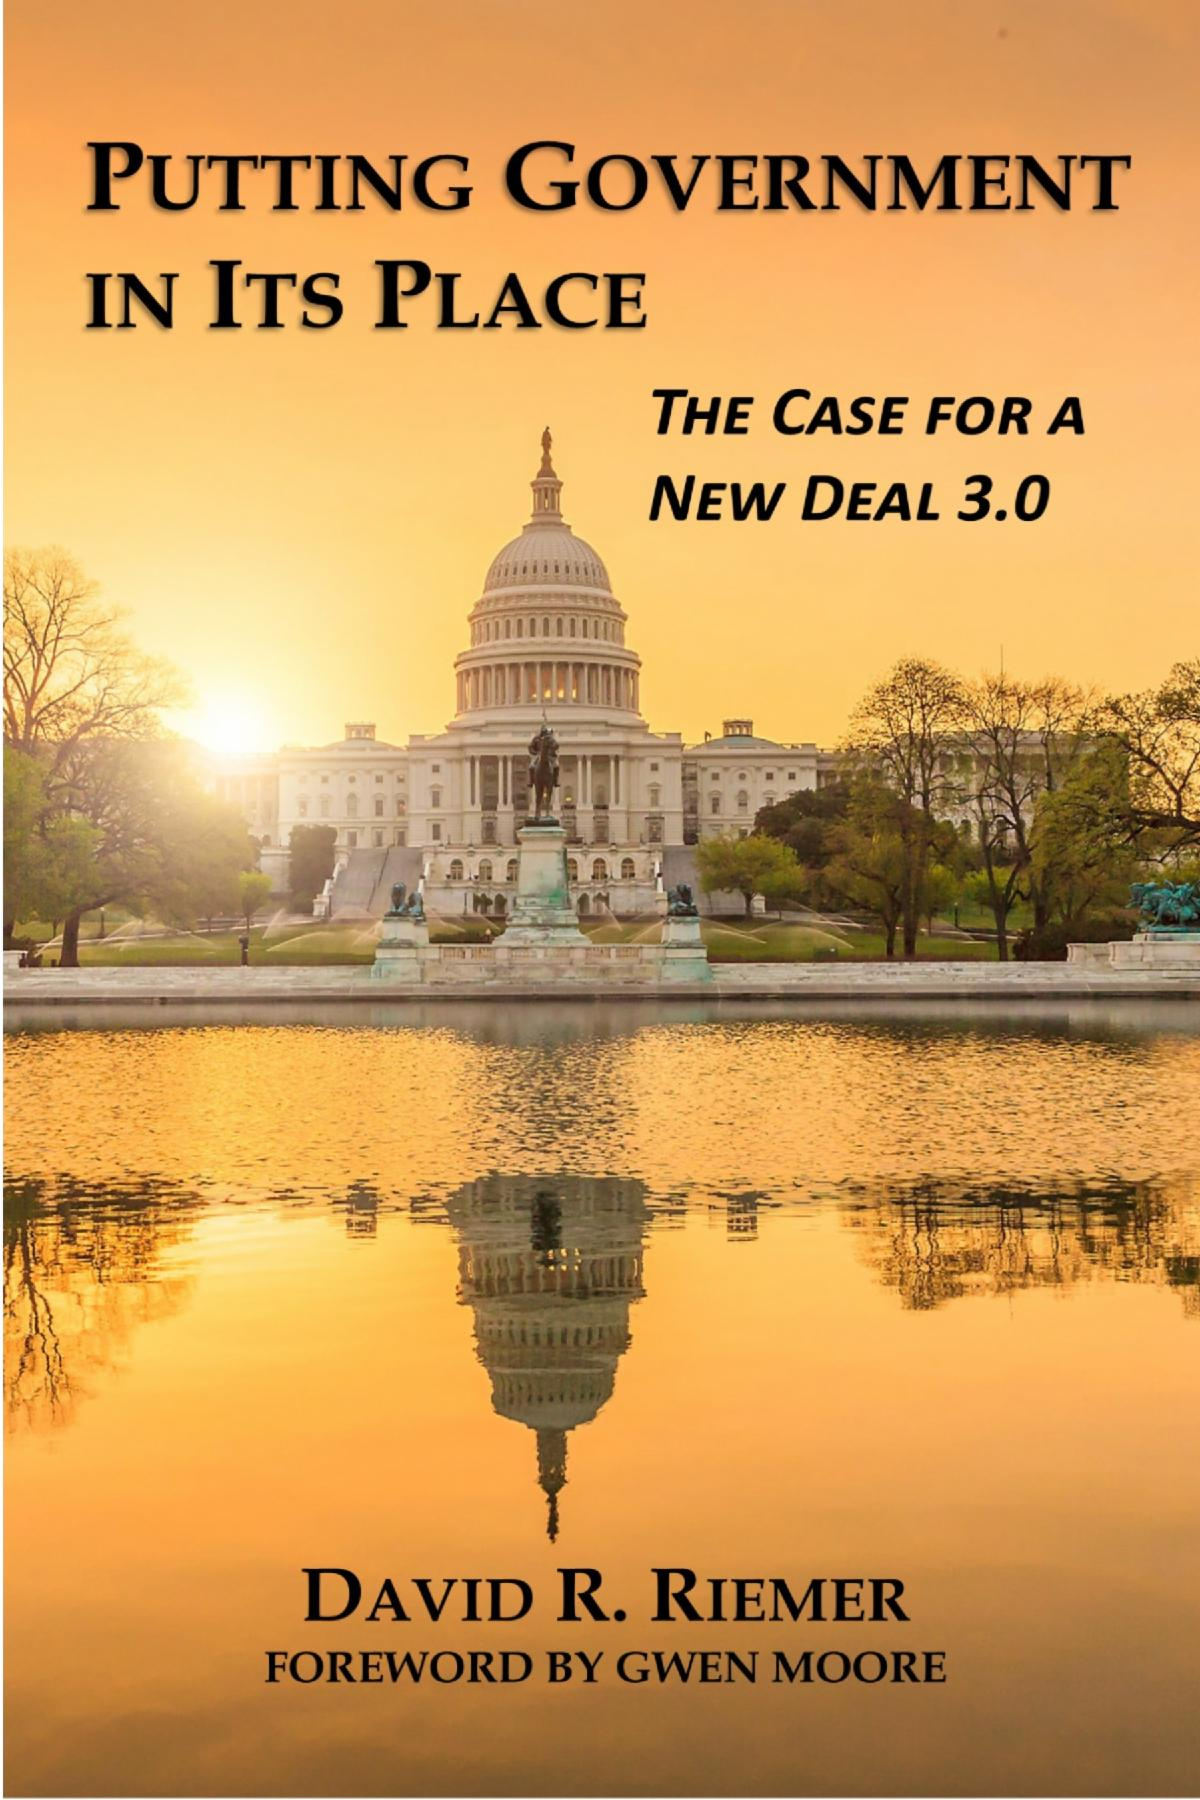 Putting Government In Its Place: The Case for a New Deal 3.0